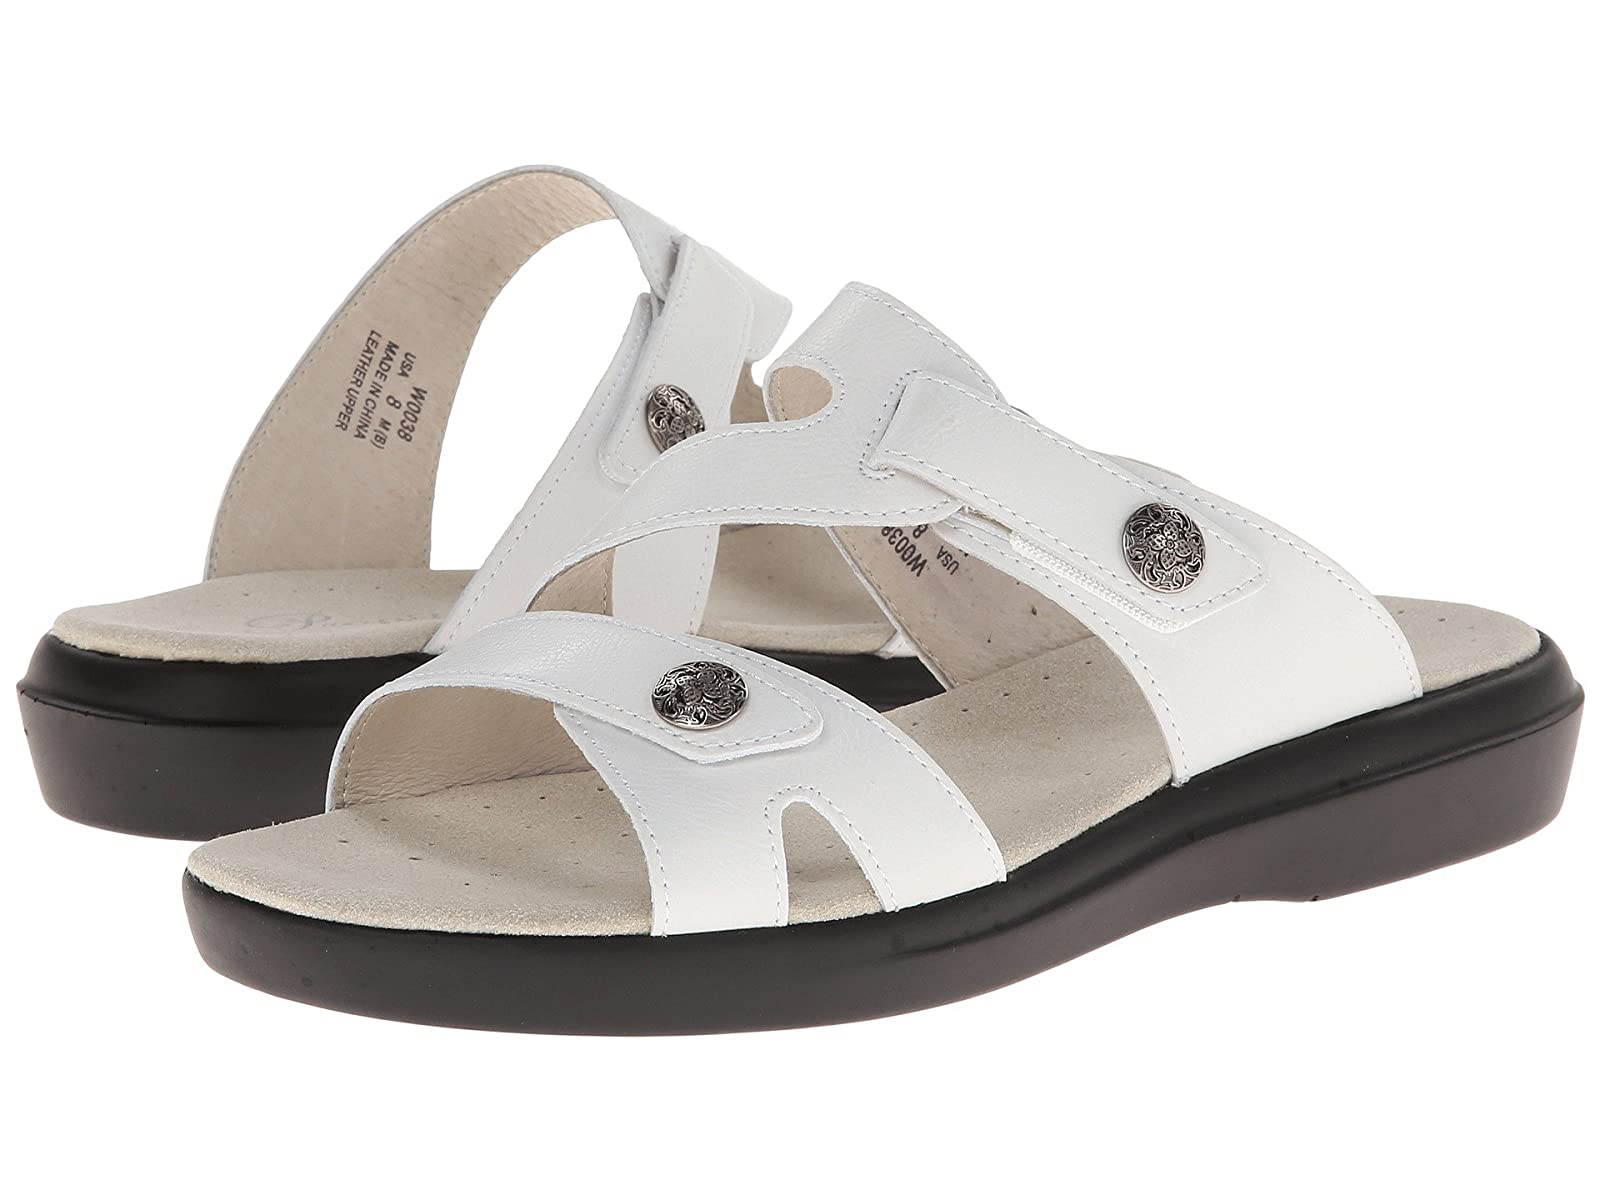 Propet St. LuciaCheap and distinctive eye-catching shoes